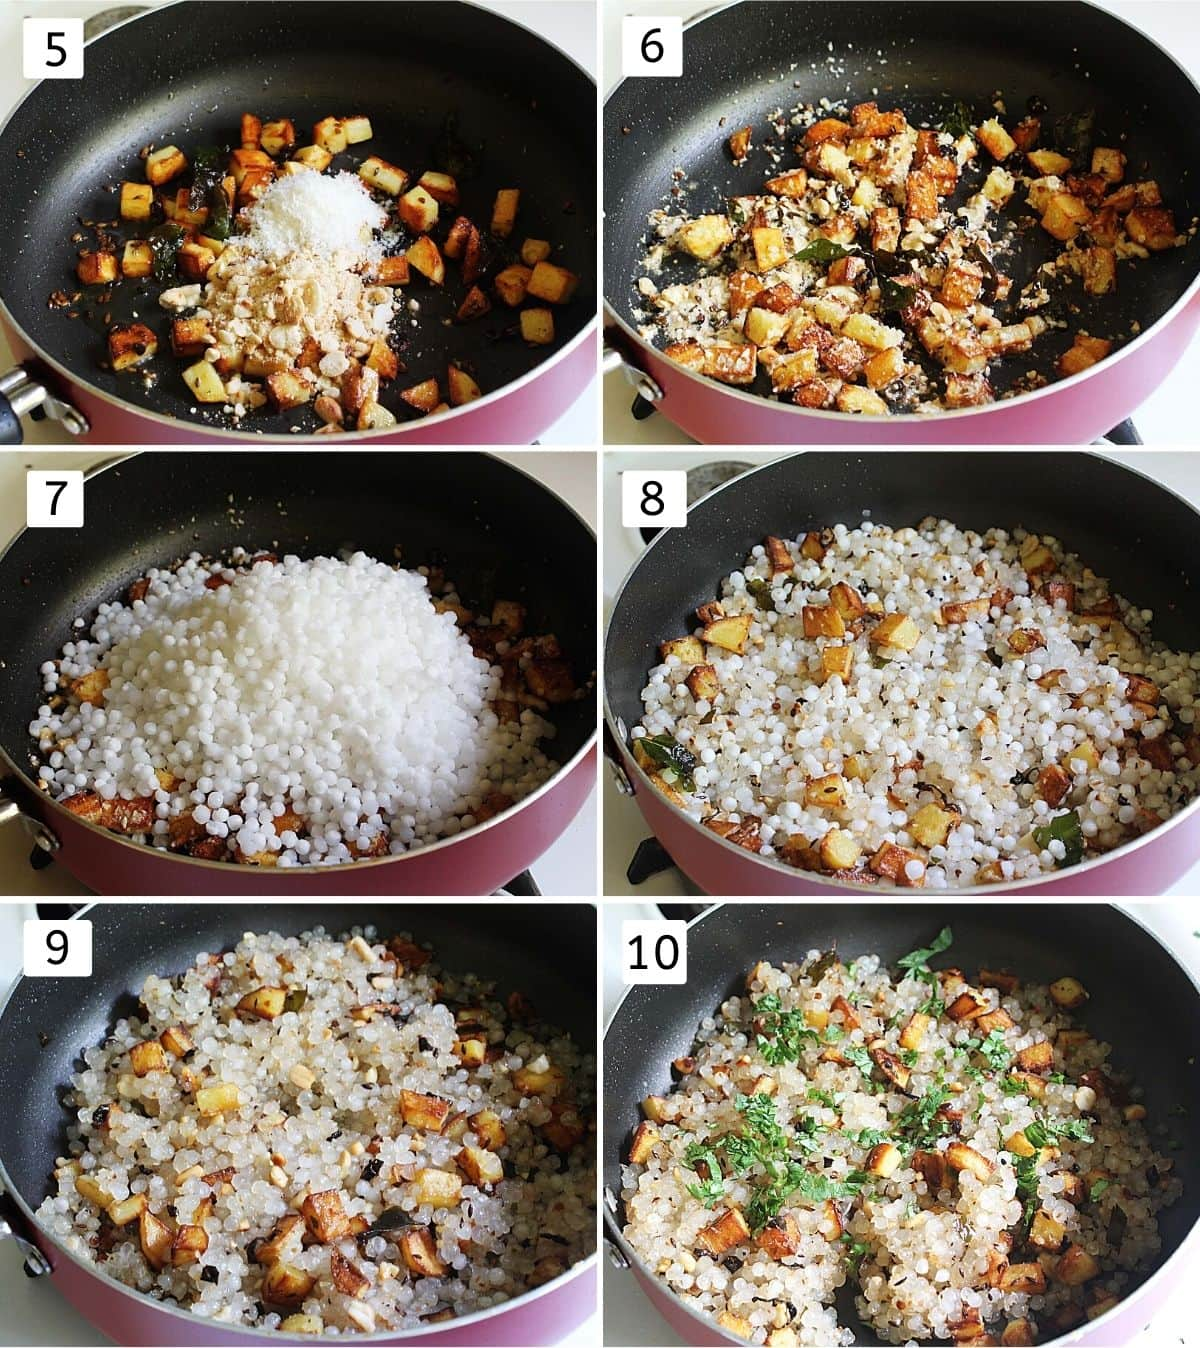 collage of 6 steps showing adding peanuts, coconut, mixing, adding sabudana, mixing, cooking, garnishing with cilantro.